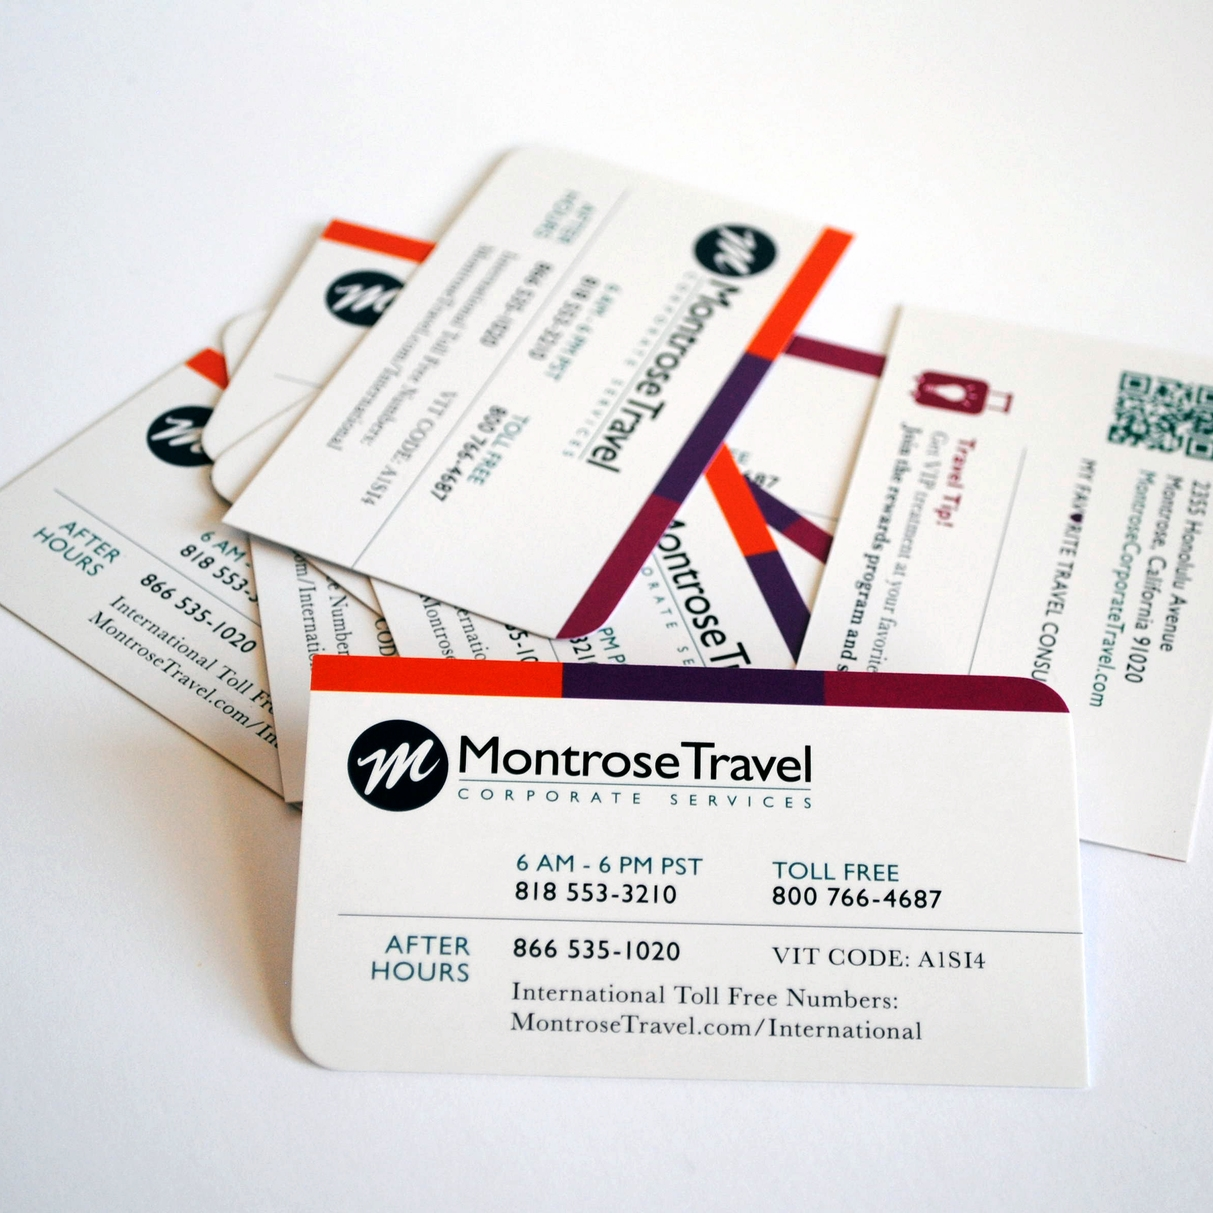 Montrose Travel Corporate Services – After Hours Card